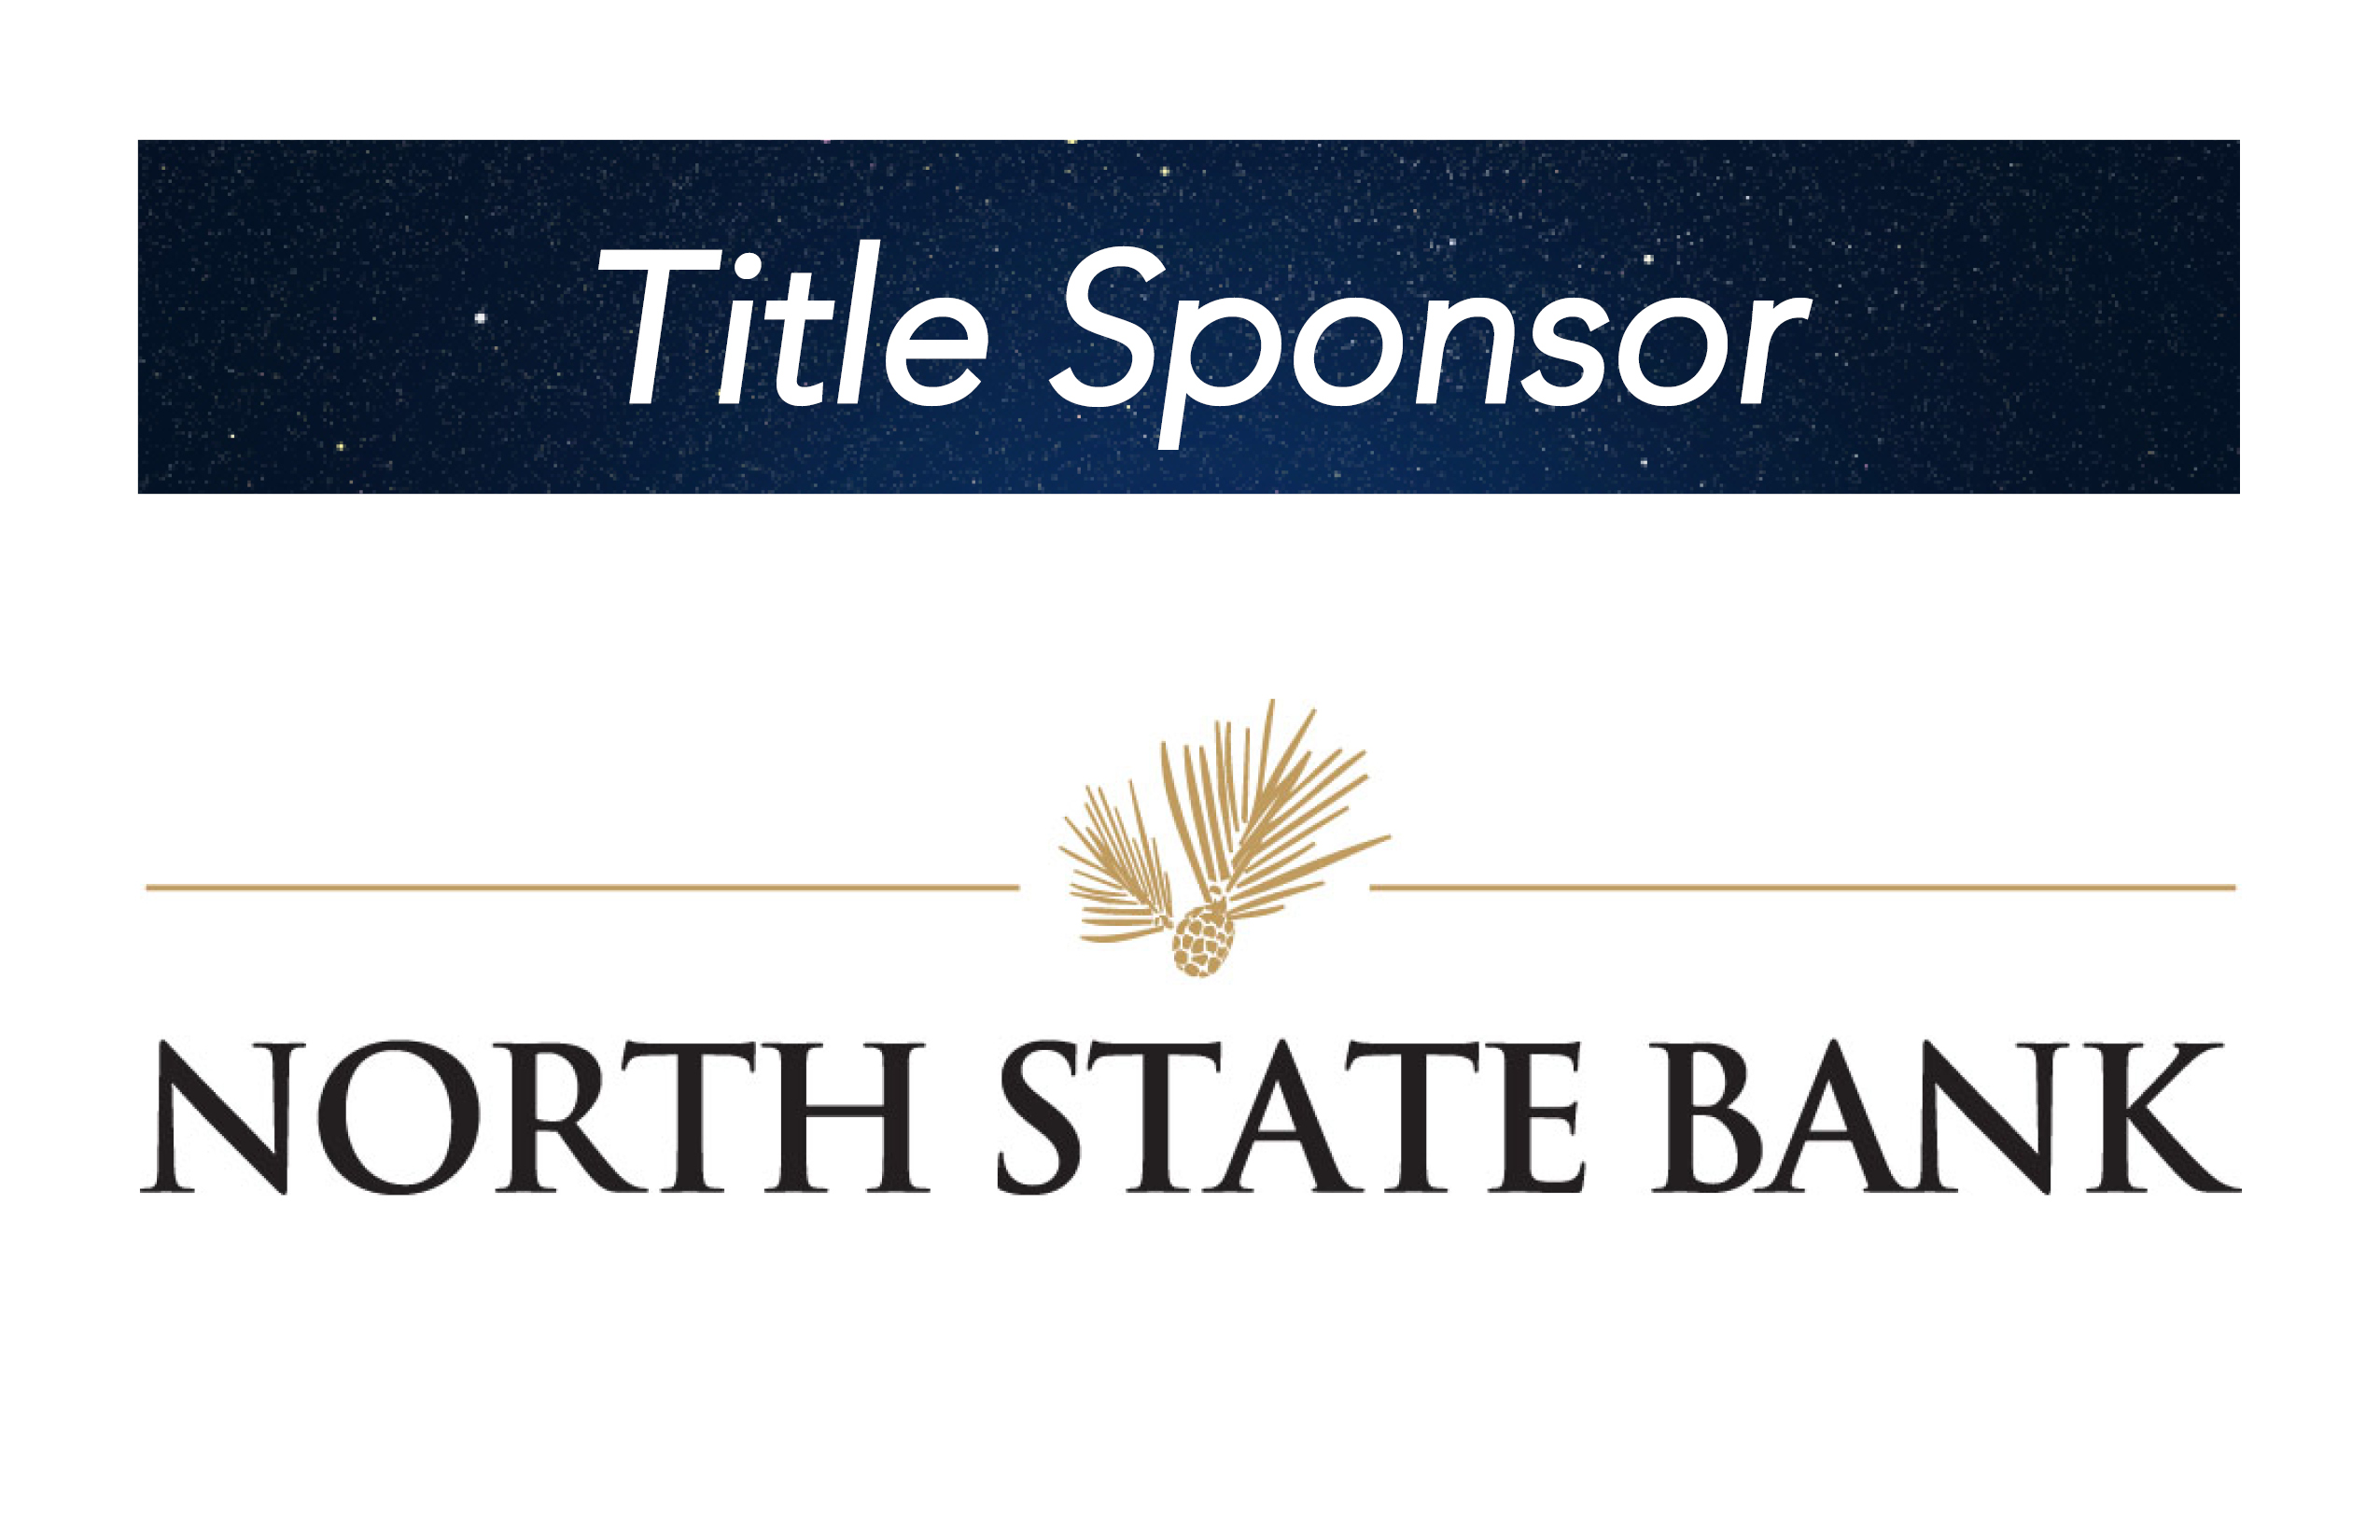 North State Bank, Title Sponsor